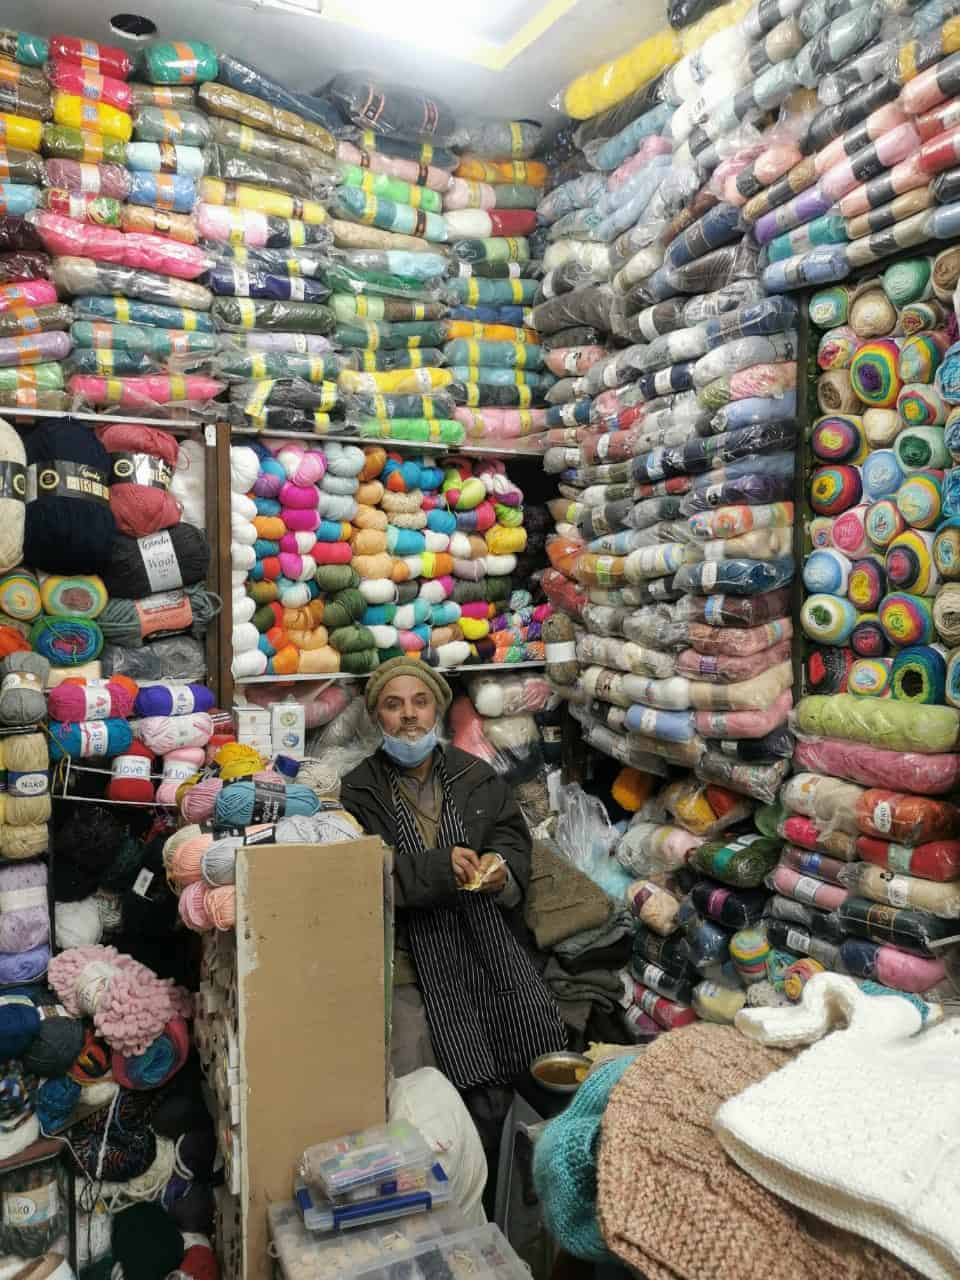 A Pakistani man sits amongst walls of colorful yarn.